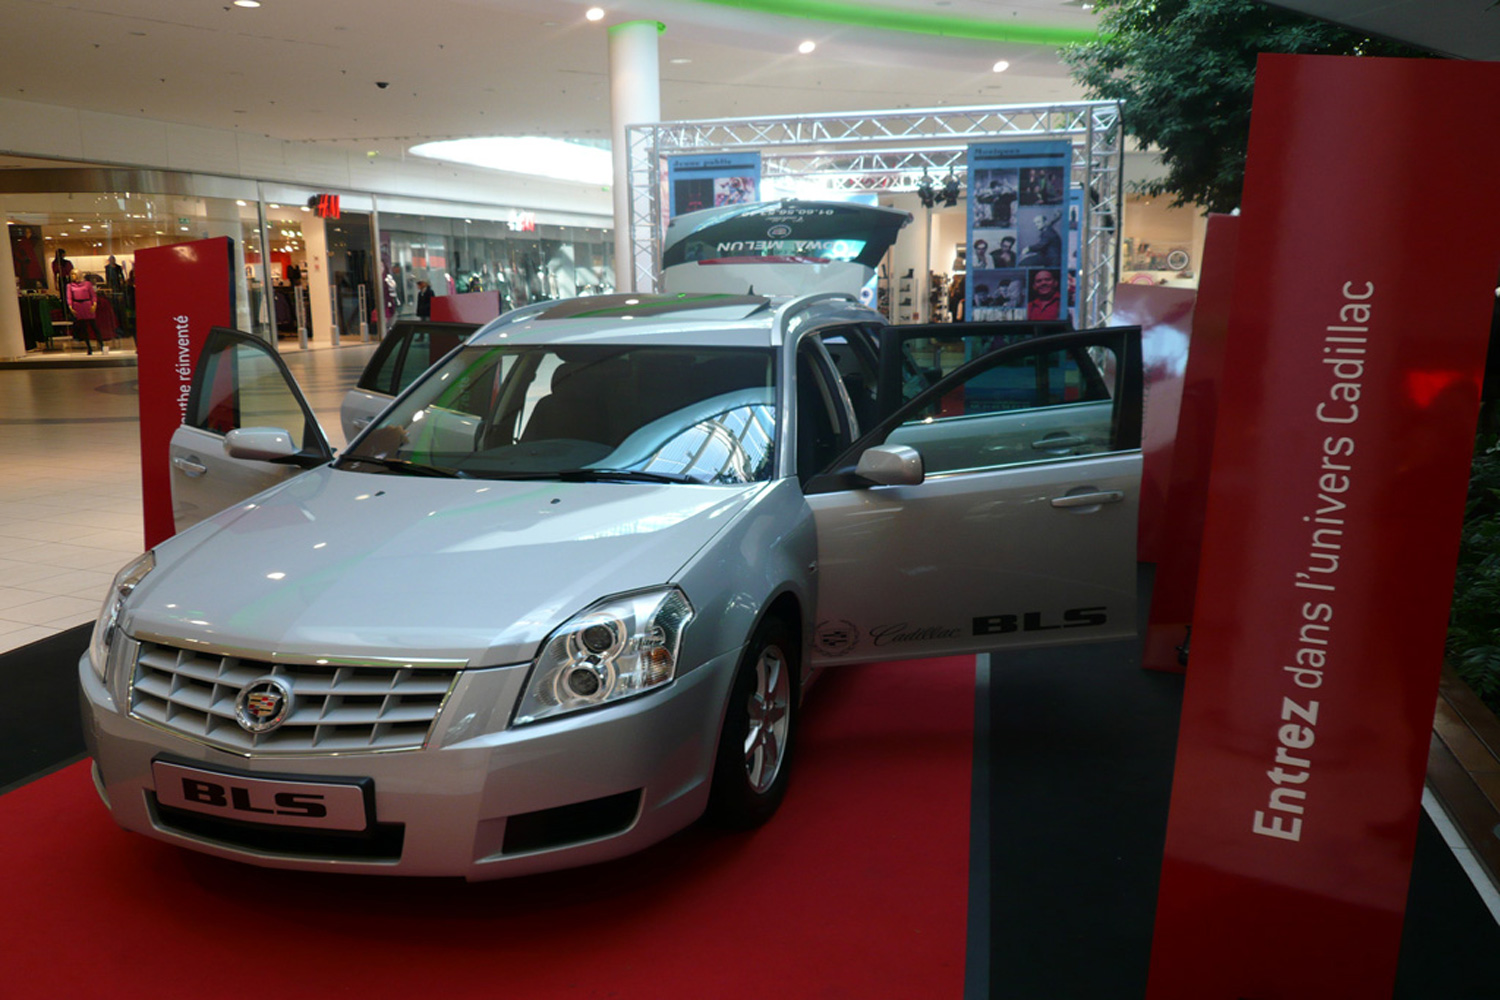 CadillacProject2008>stage3.jpg